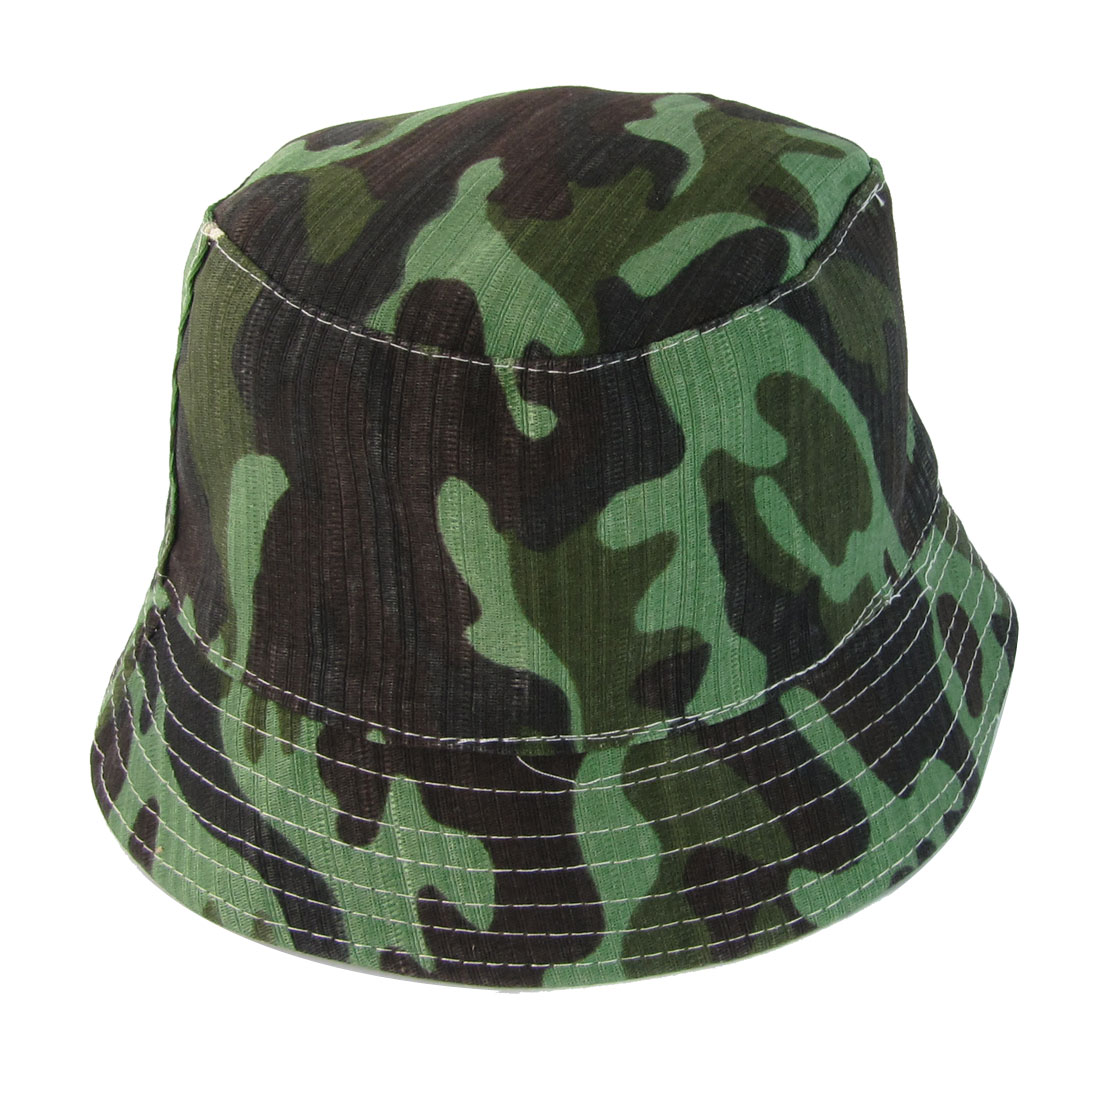 Unisex Camouflage Pattern Stitch Ornament Bucket Cap Hat Army Green